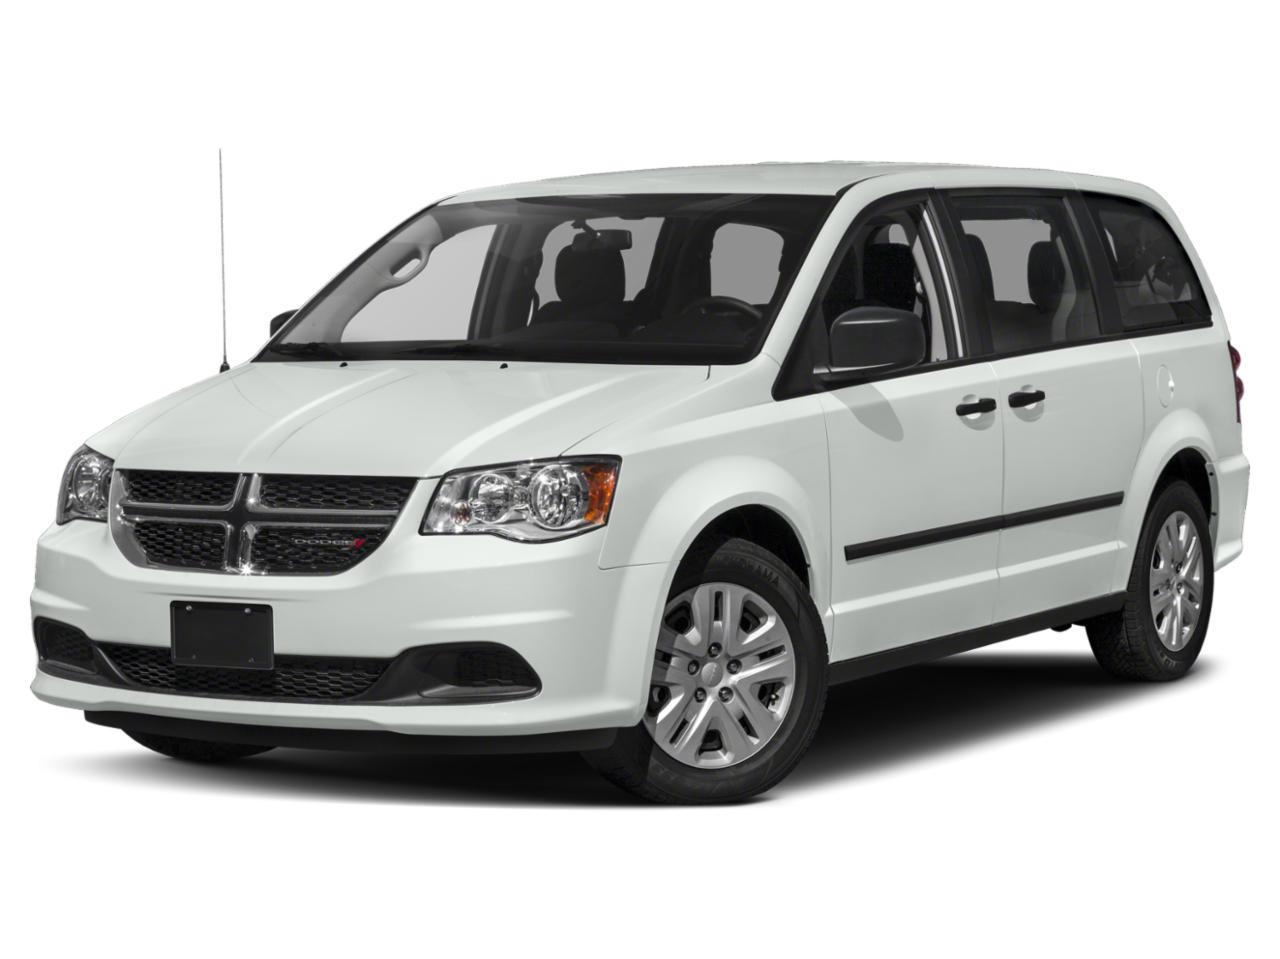 2019 Dodge Grand Caravan Vehicle Photo in Melbourne, FL 32901